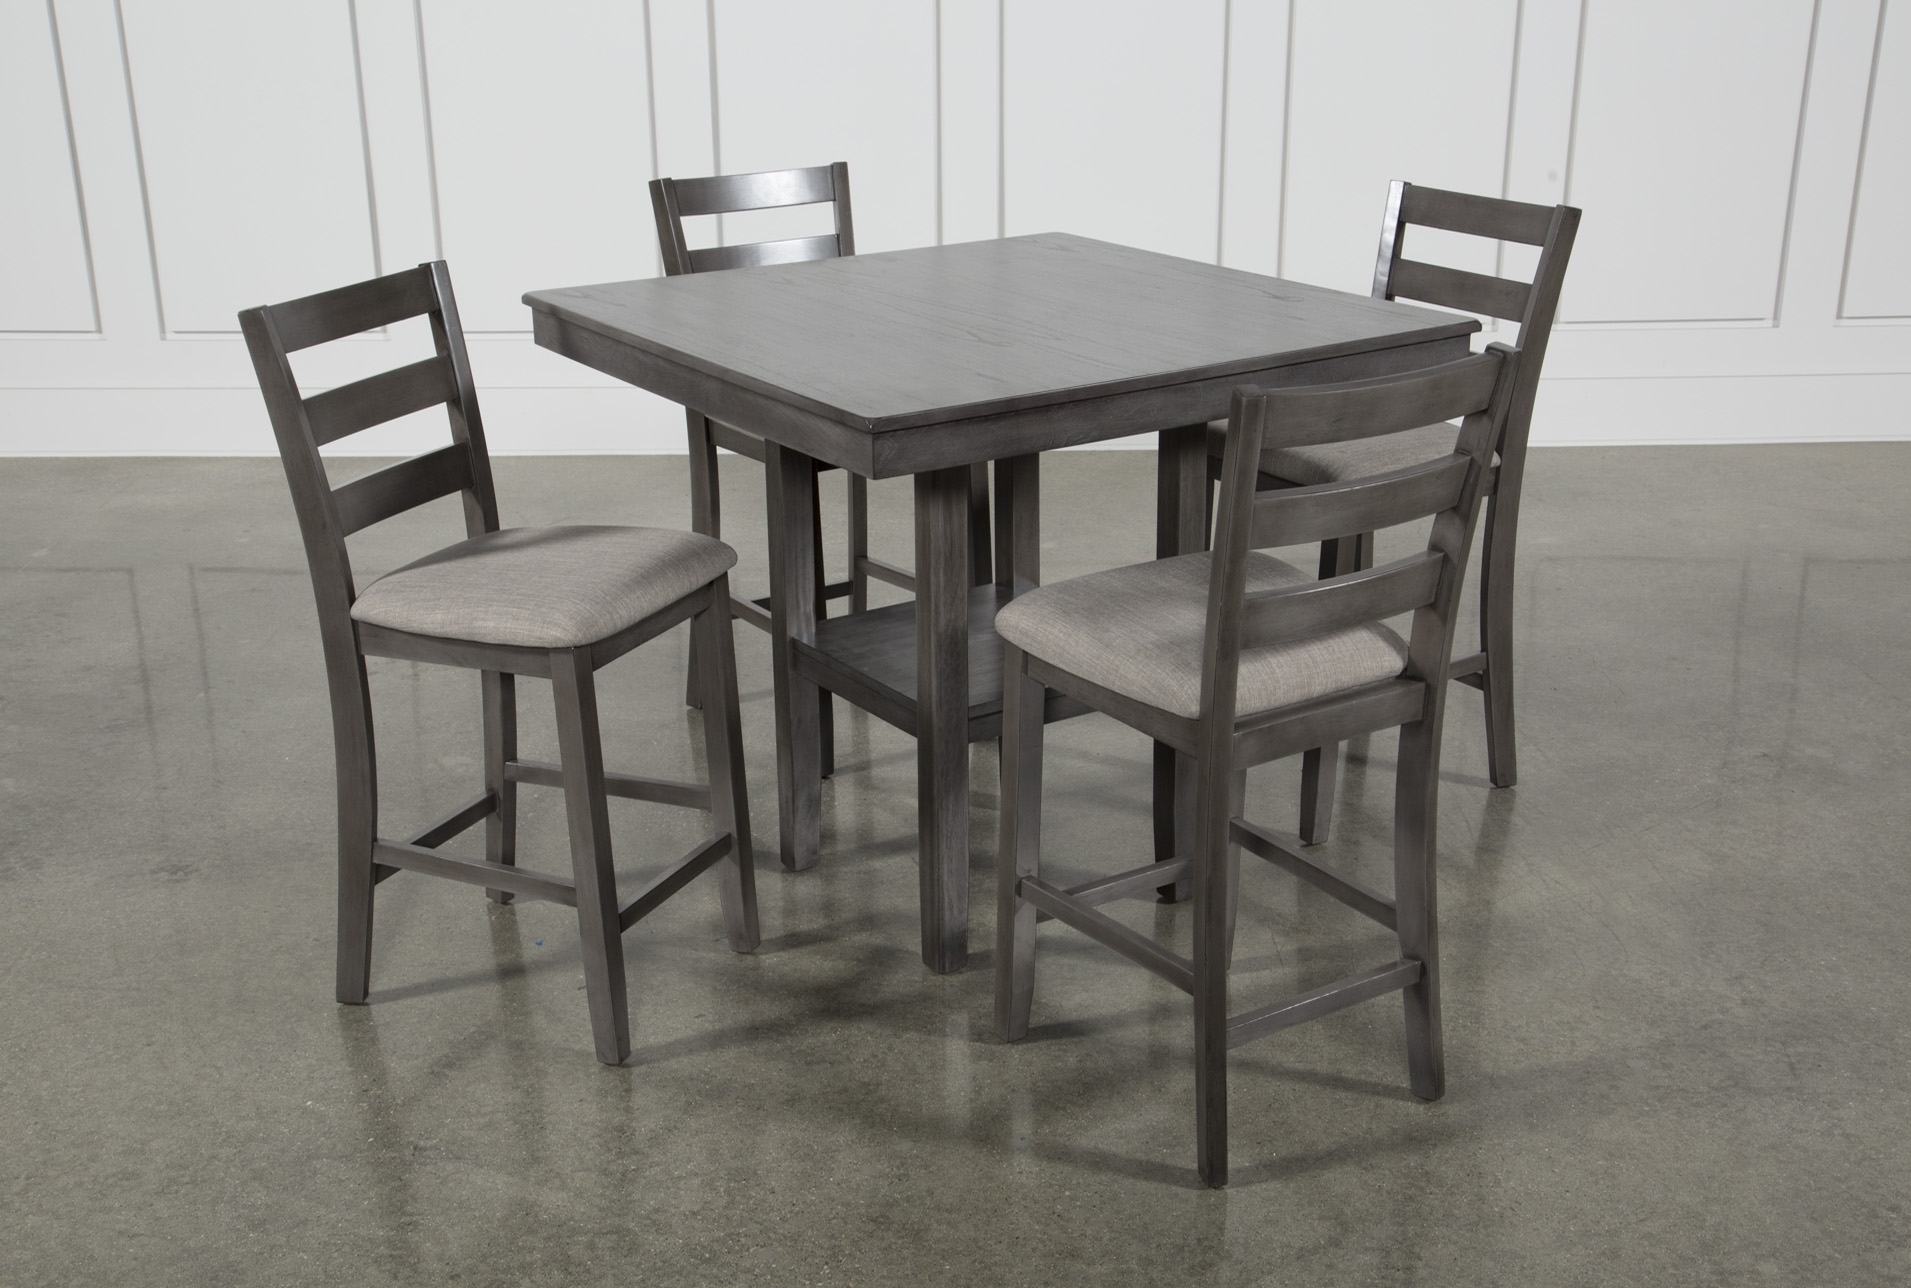 Jameson Grey 5 Piece Counter Set | Products | Pinterest | Products Pertaining To Latest Jameson Grey 5 Piece Counter Sets (Photo 2 of 20)